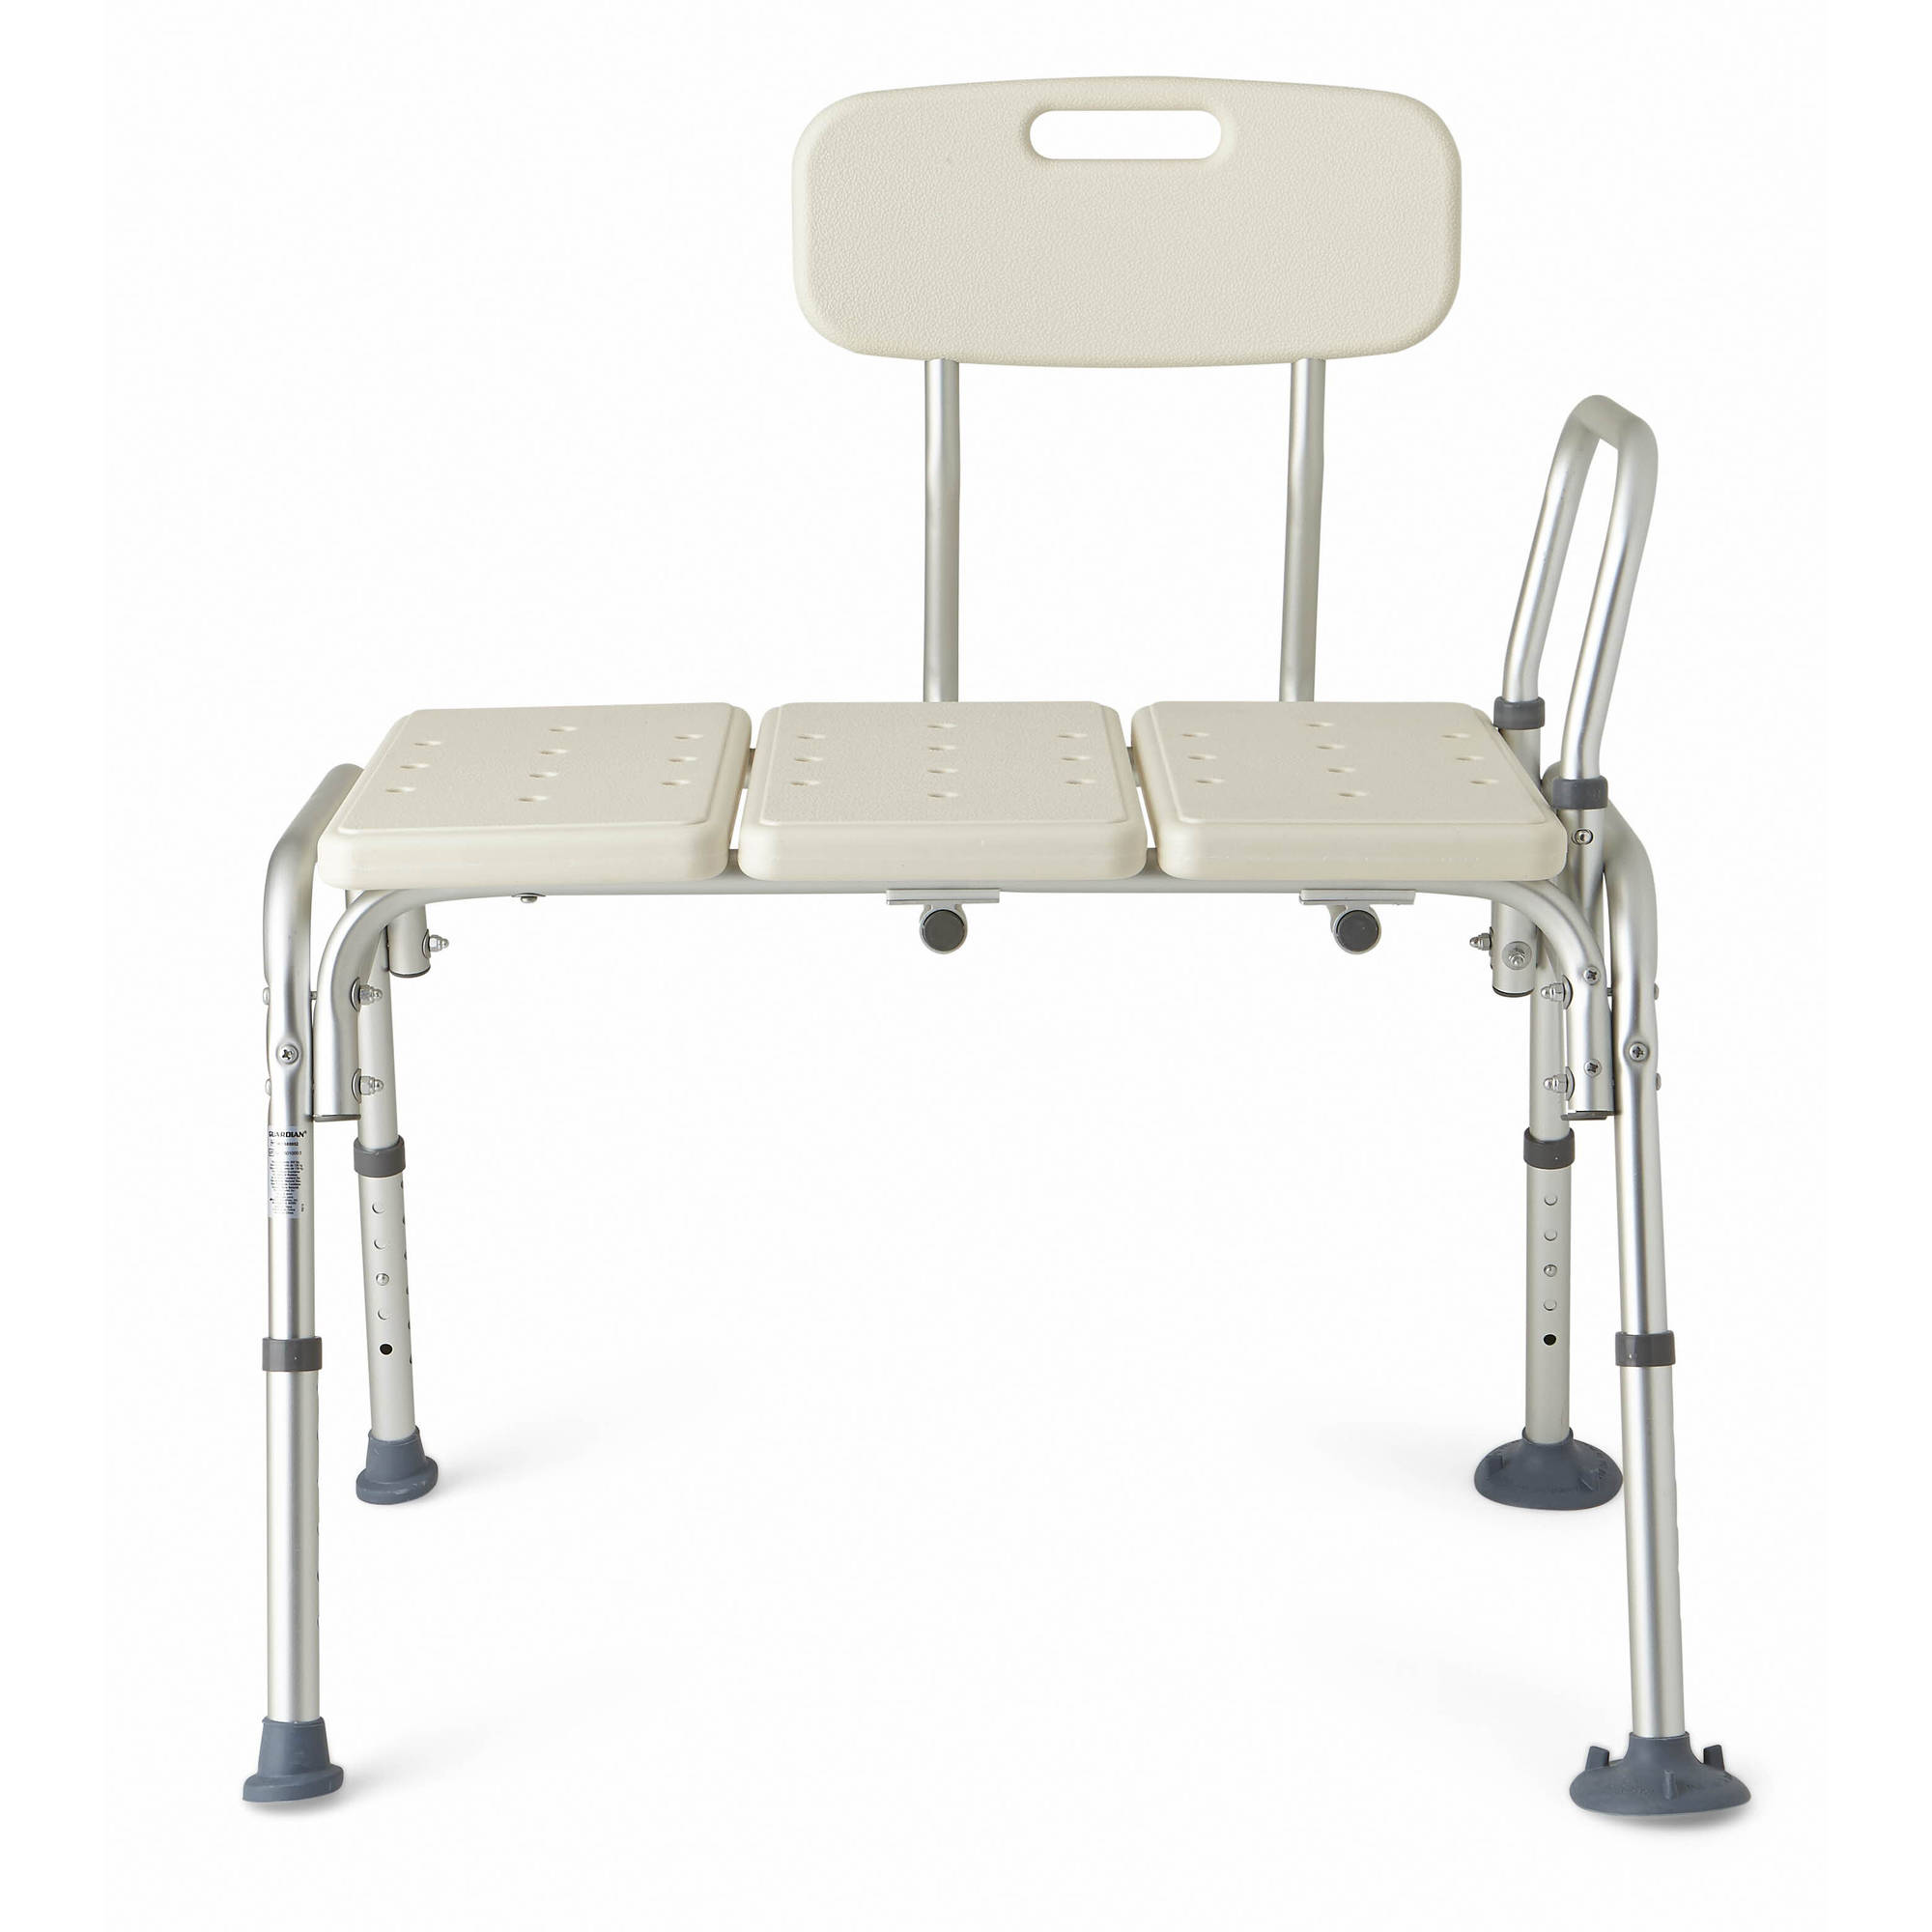 Medline Transfer Bench with Back - Walmart.com